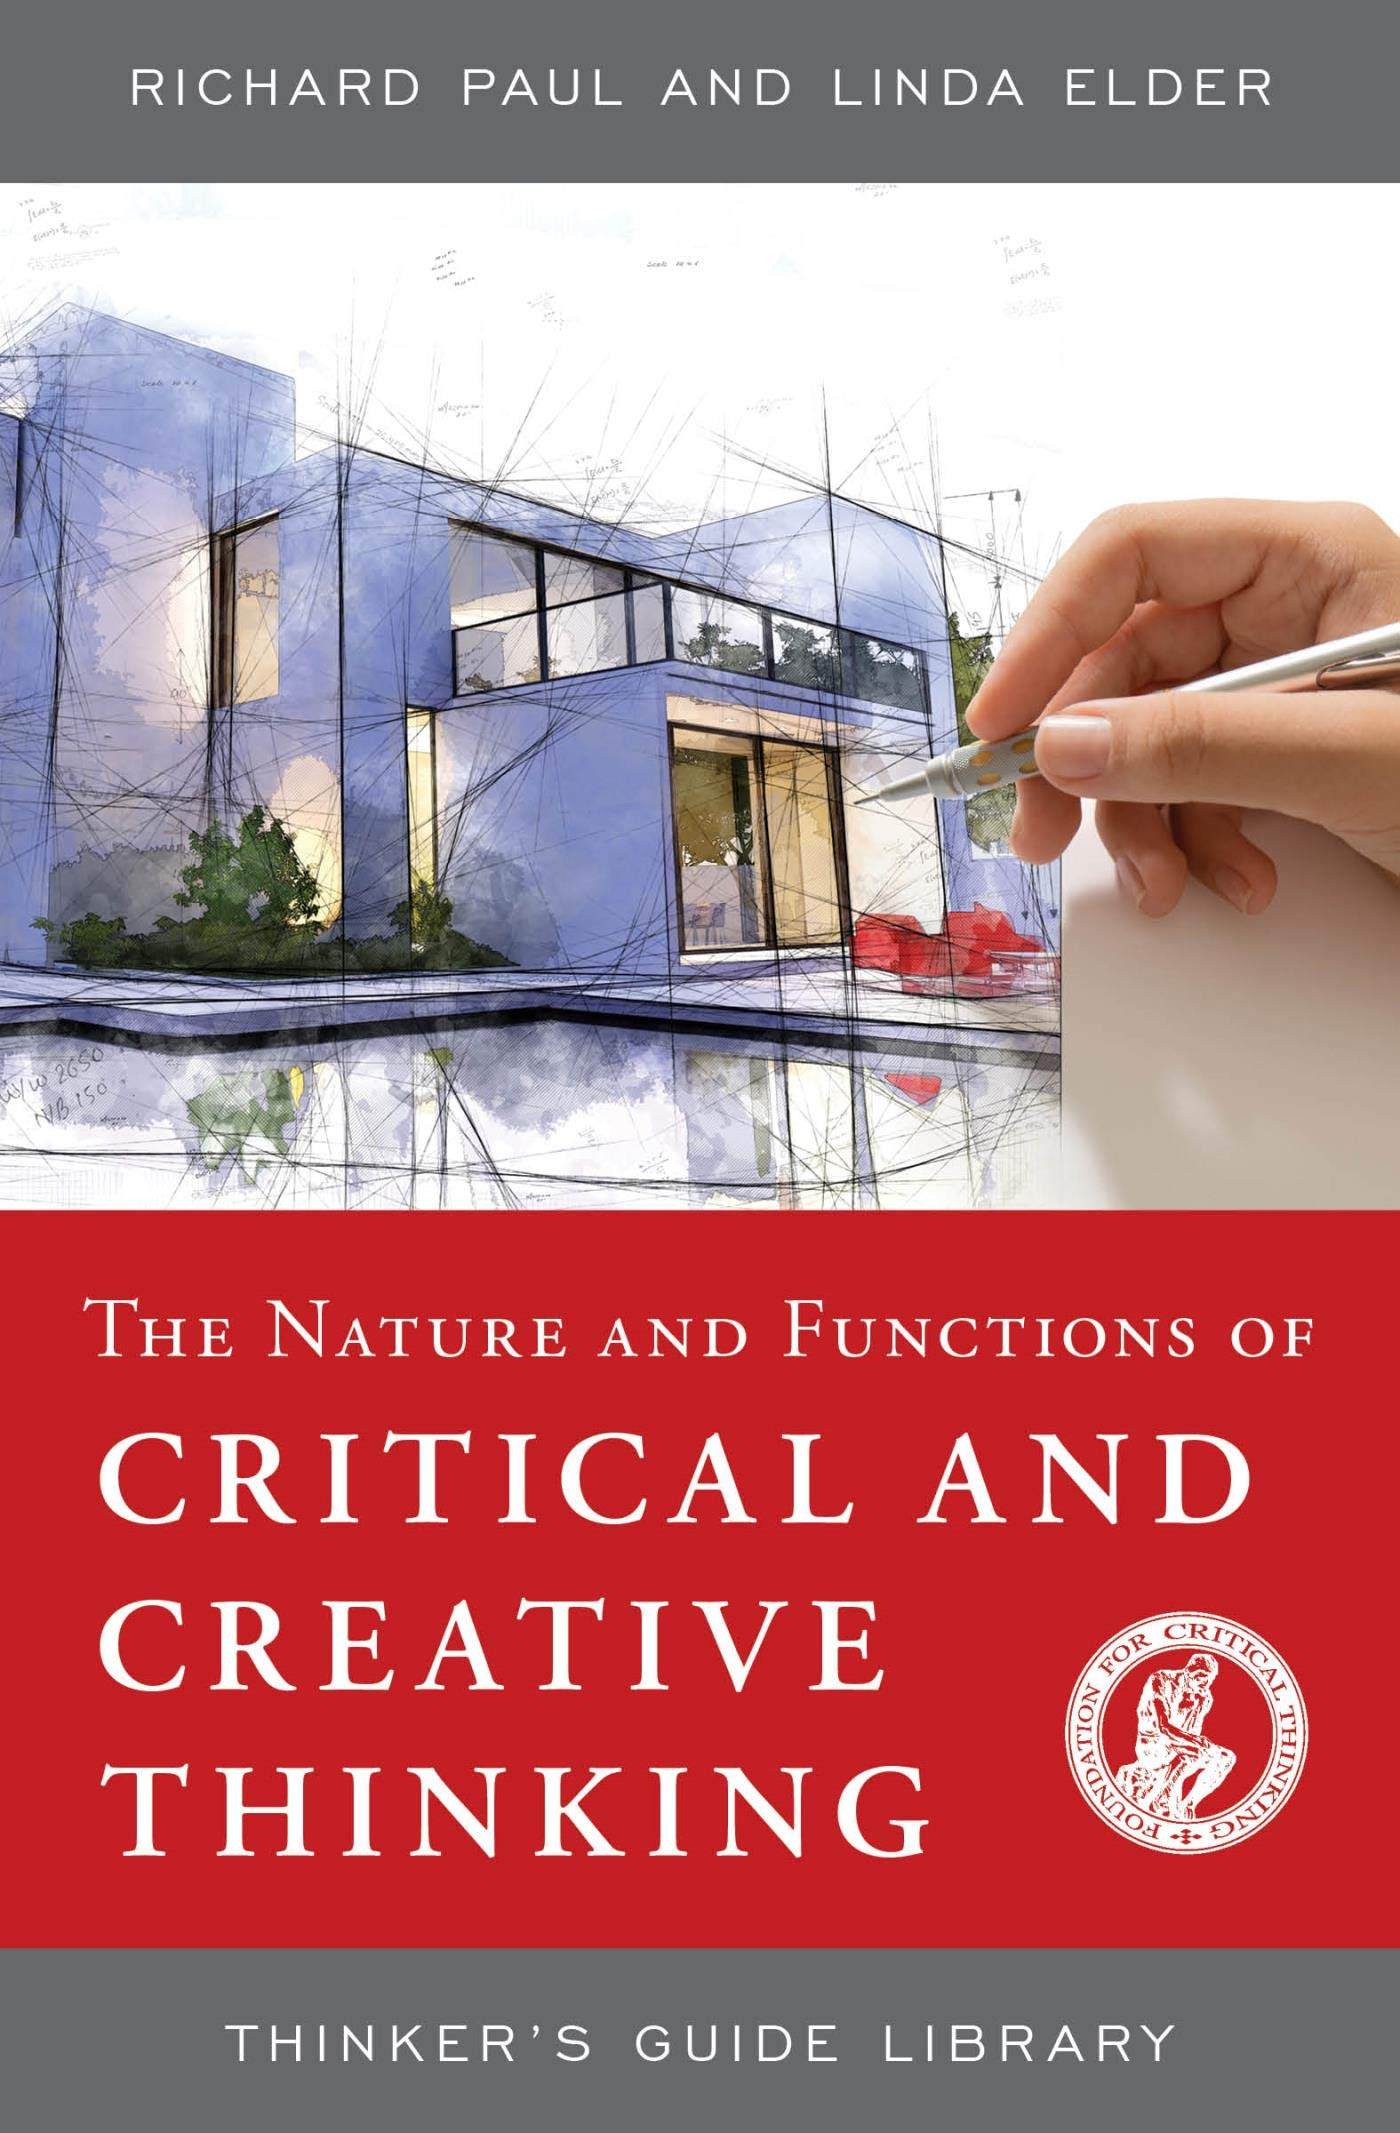 The Nature and Functions of Critical & Creative Thinking (Thinker's Guide Library)